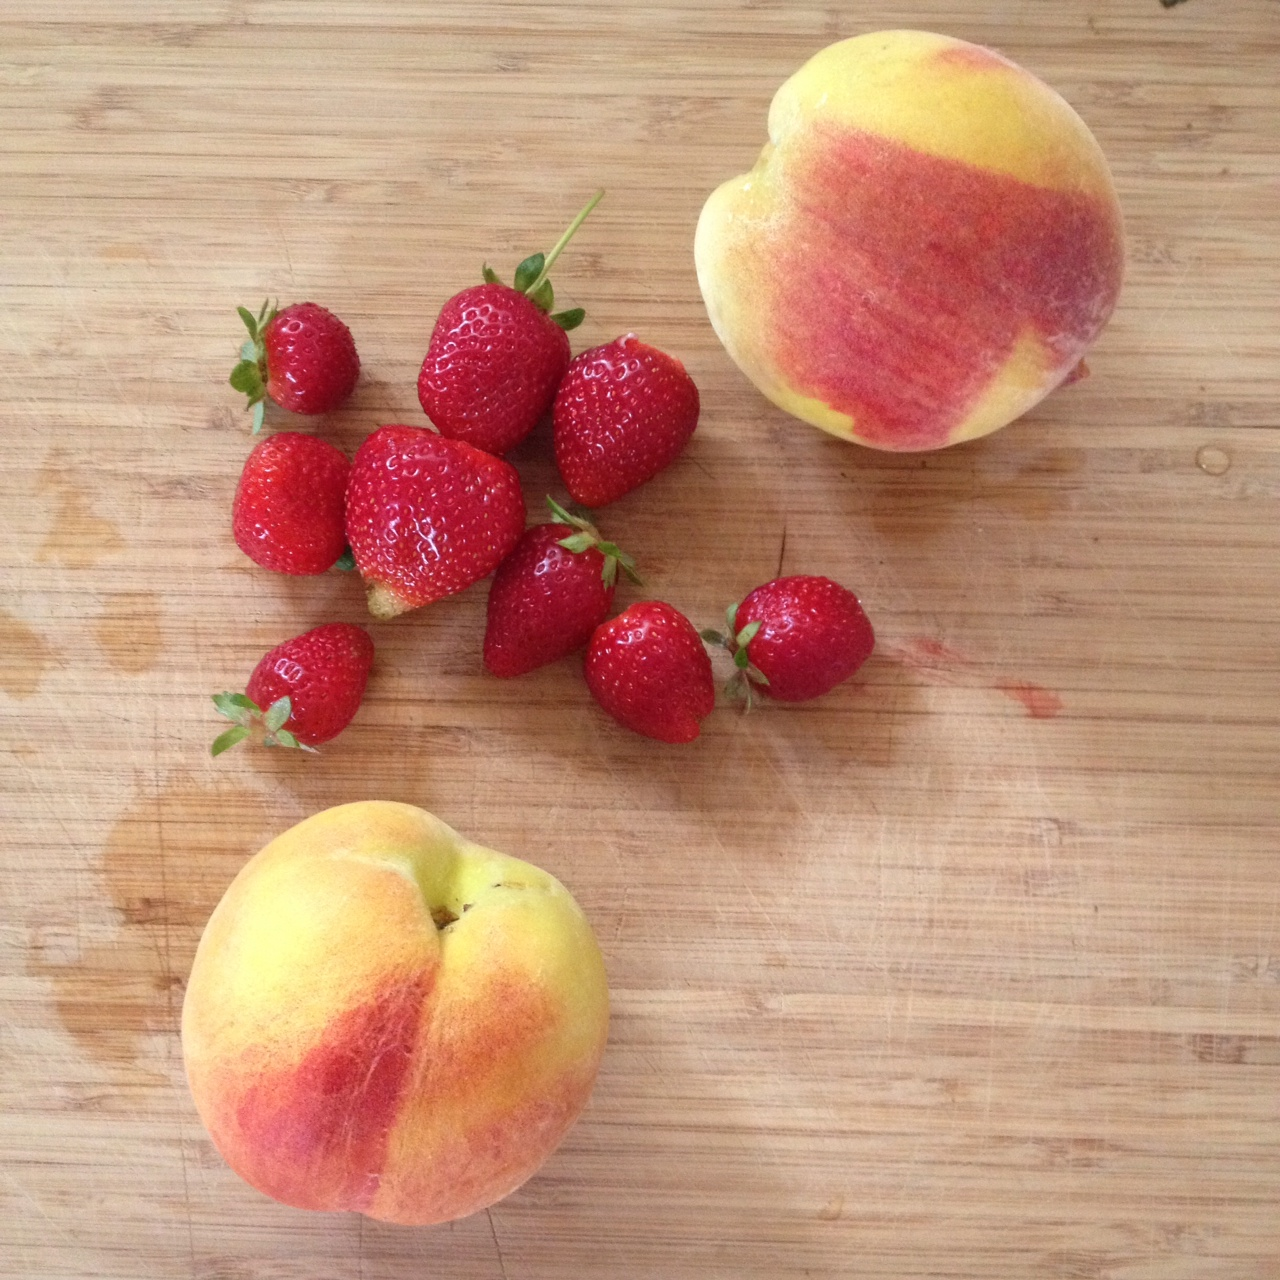 PEACHES & STRAWBERRIES GREW ABUNDANTLY THIS SUMMER